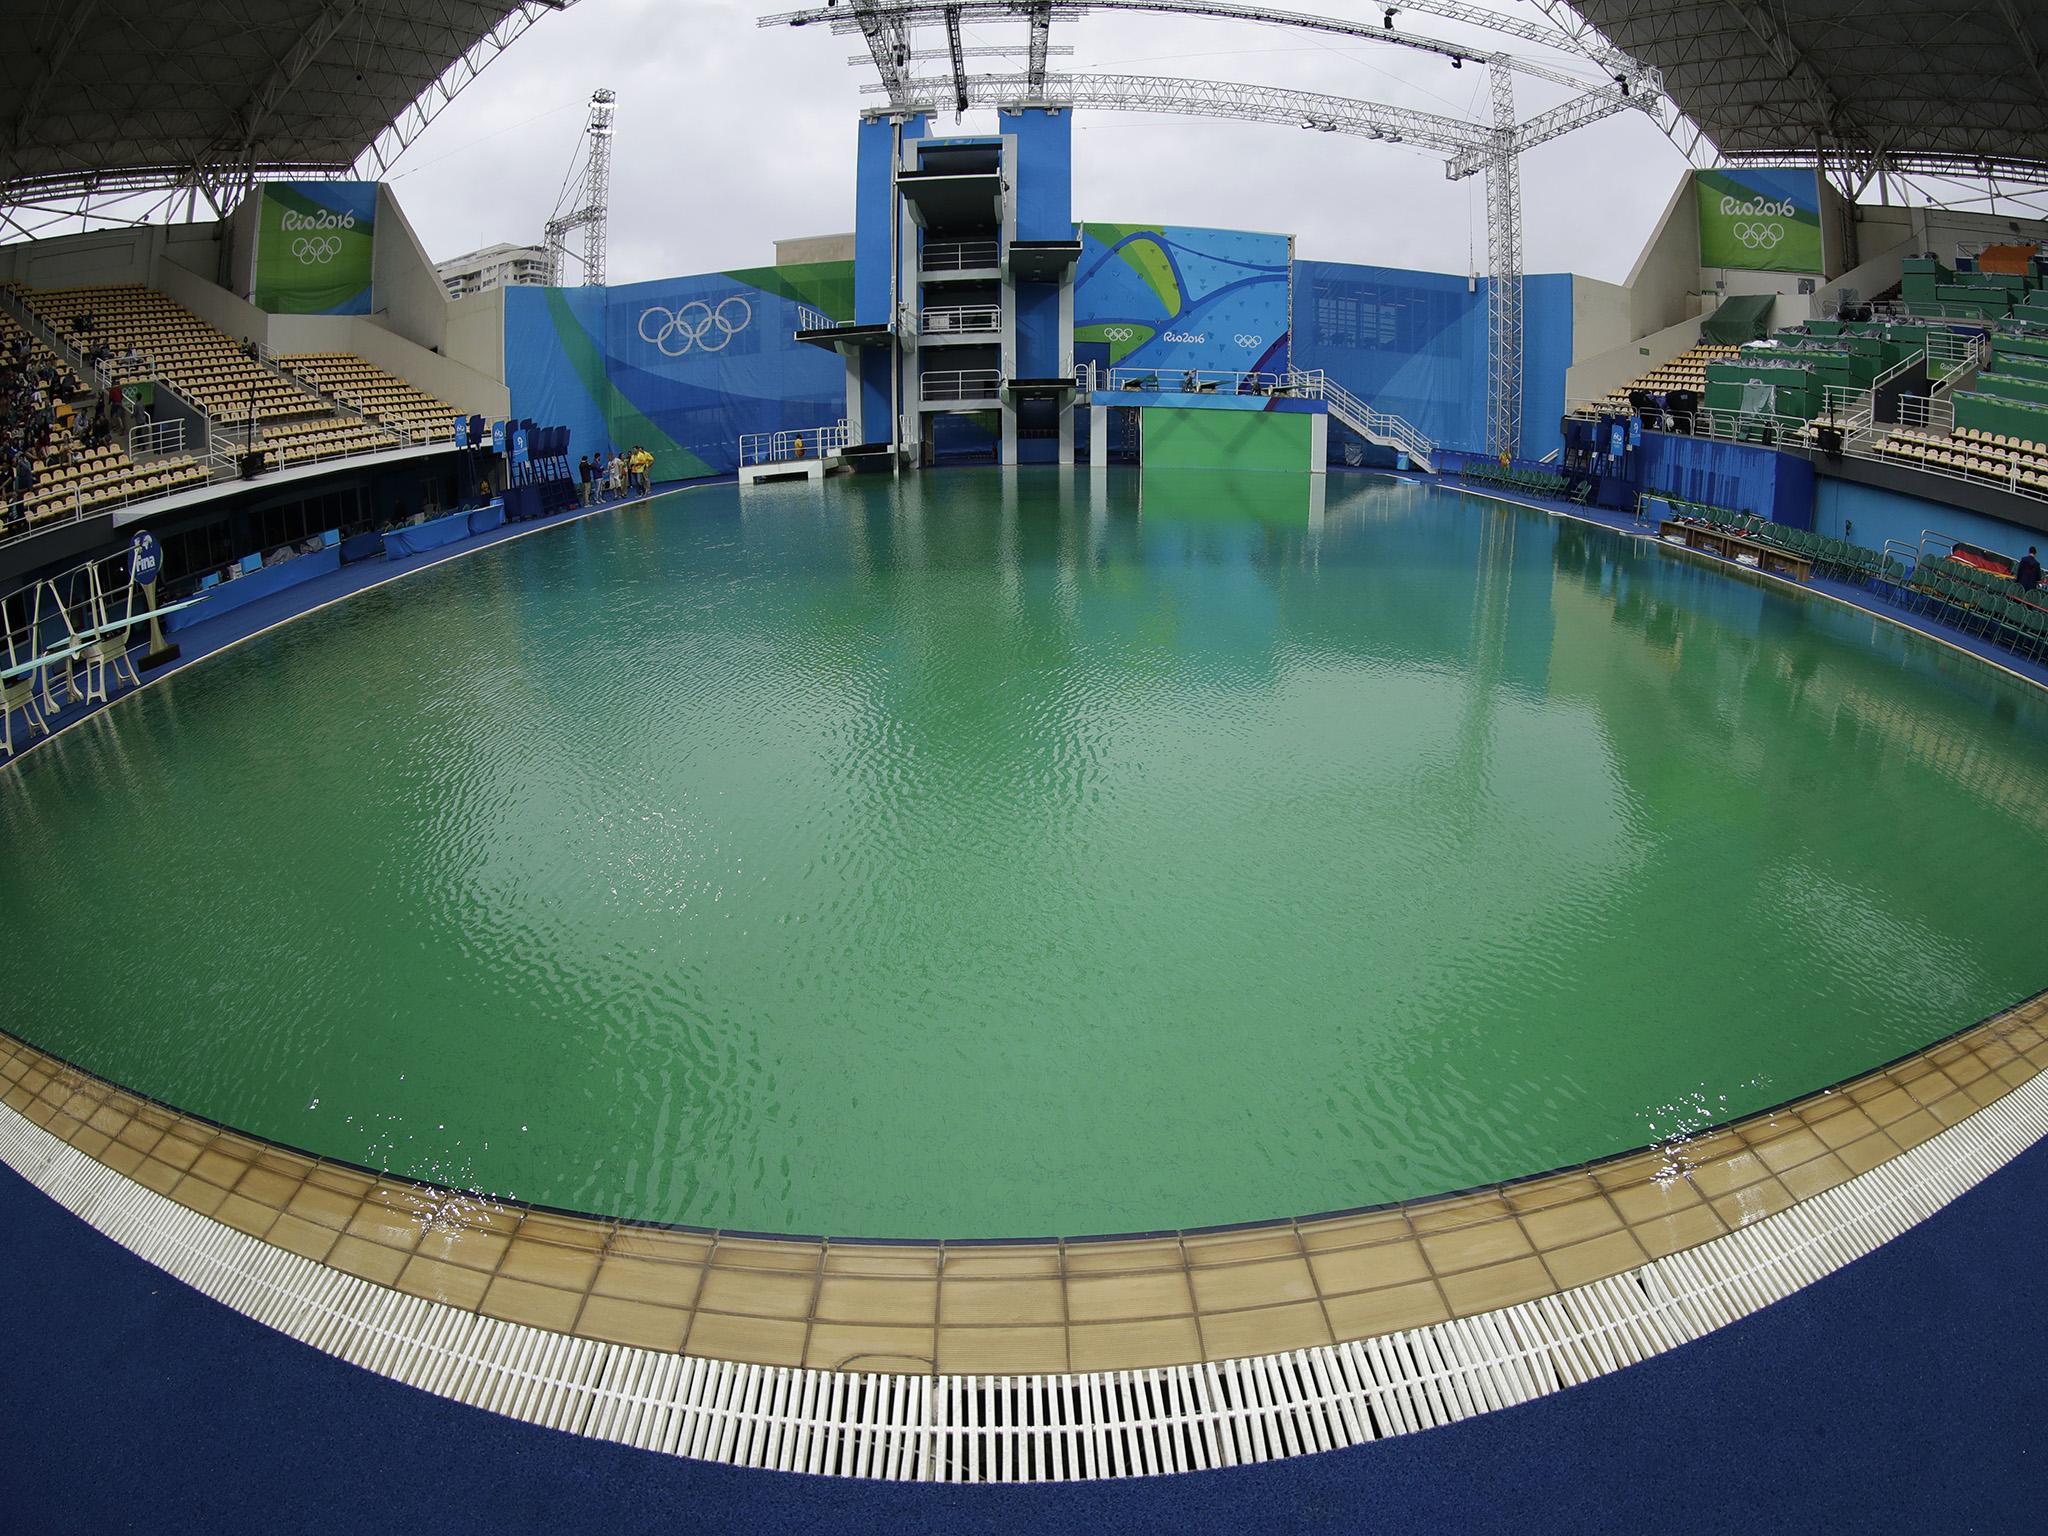 rio 2016 green olympic pool drained as organisers reveal hydrogen peroxide caused colour change the independent